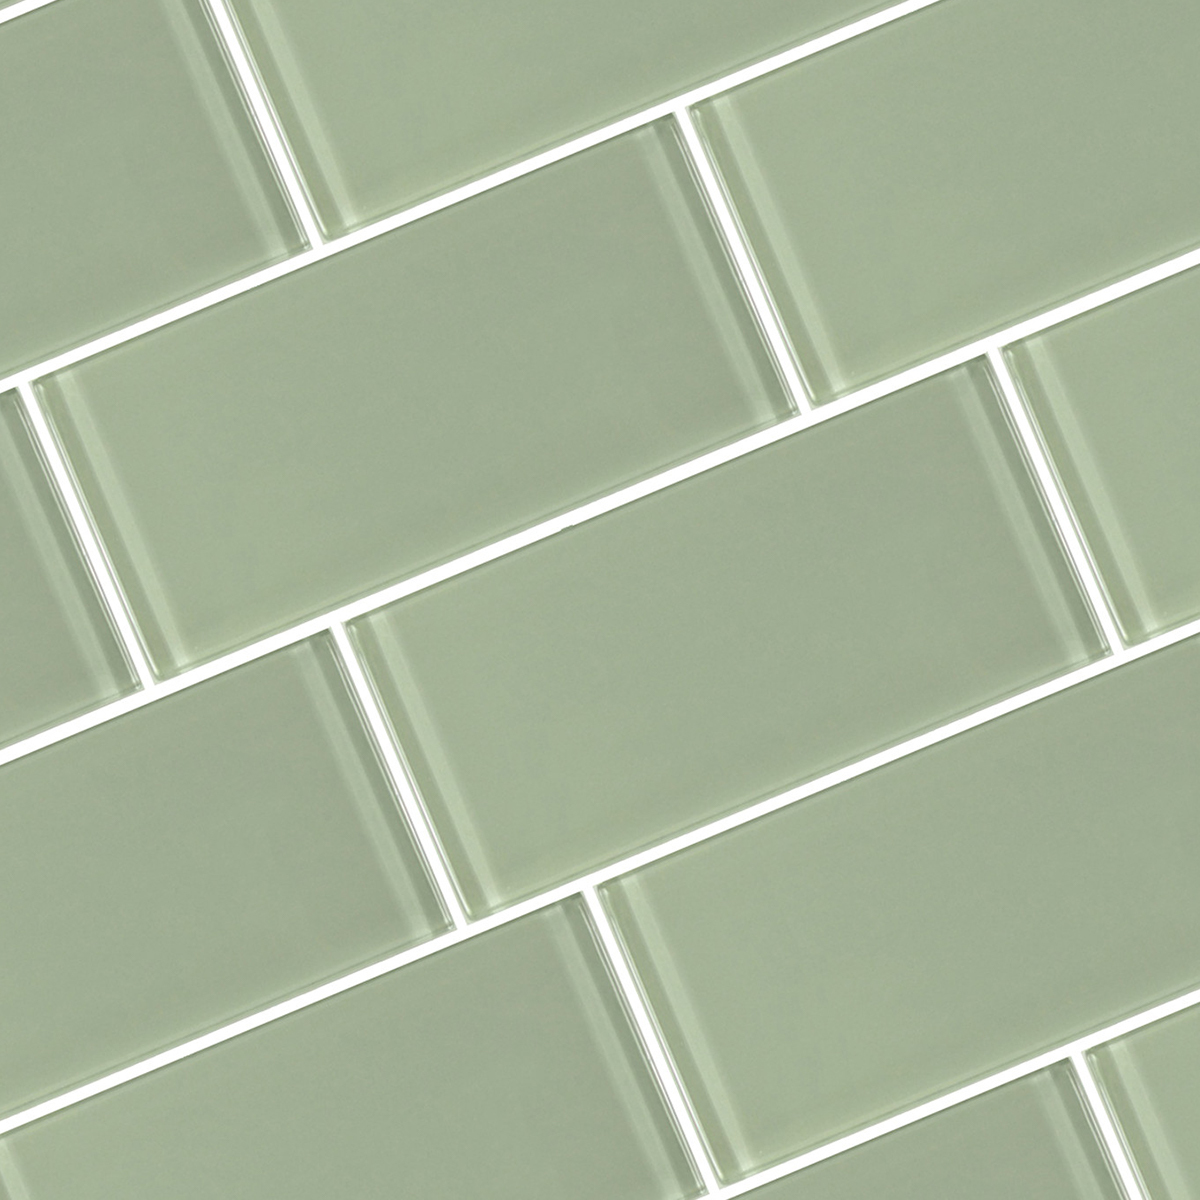 Green glass subway tile for backsplash photo